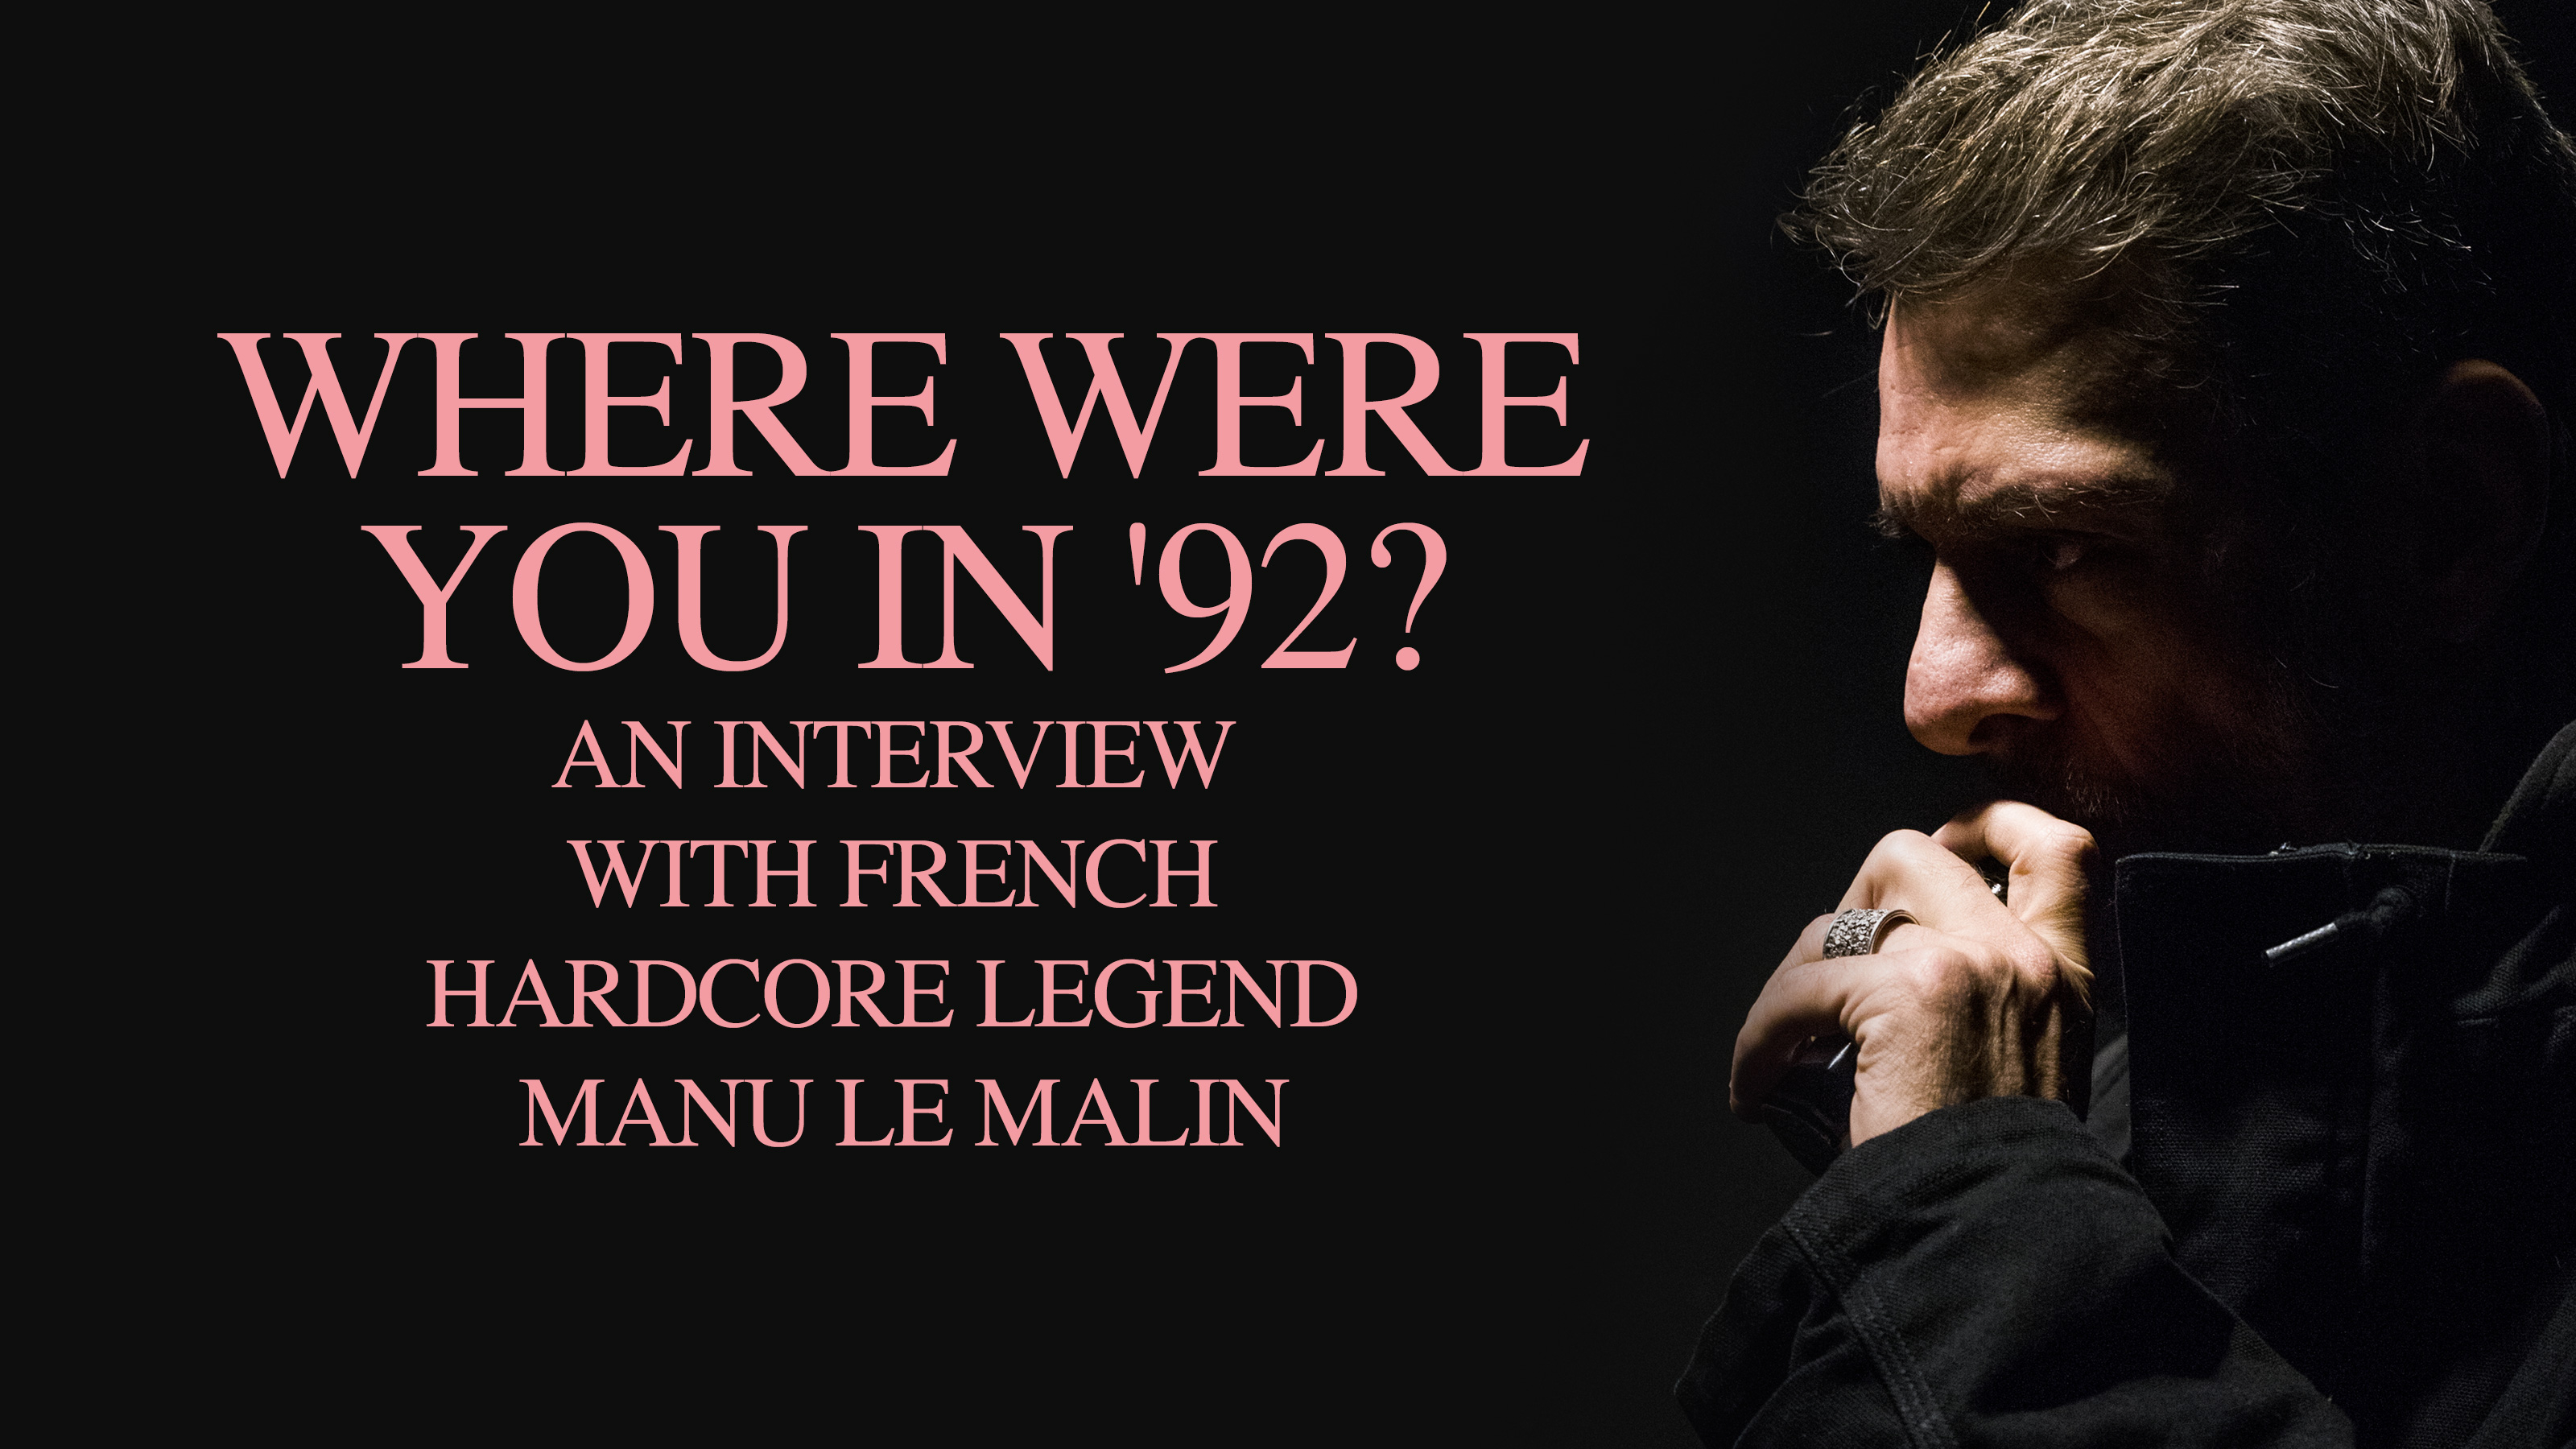 Where were you in '92? An interview with French hardcore legend Manu Le Malin